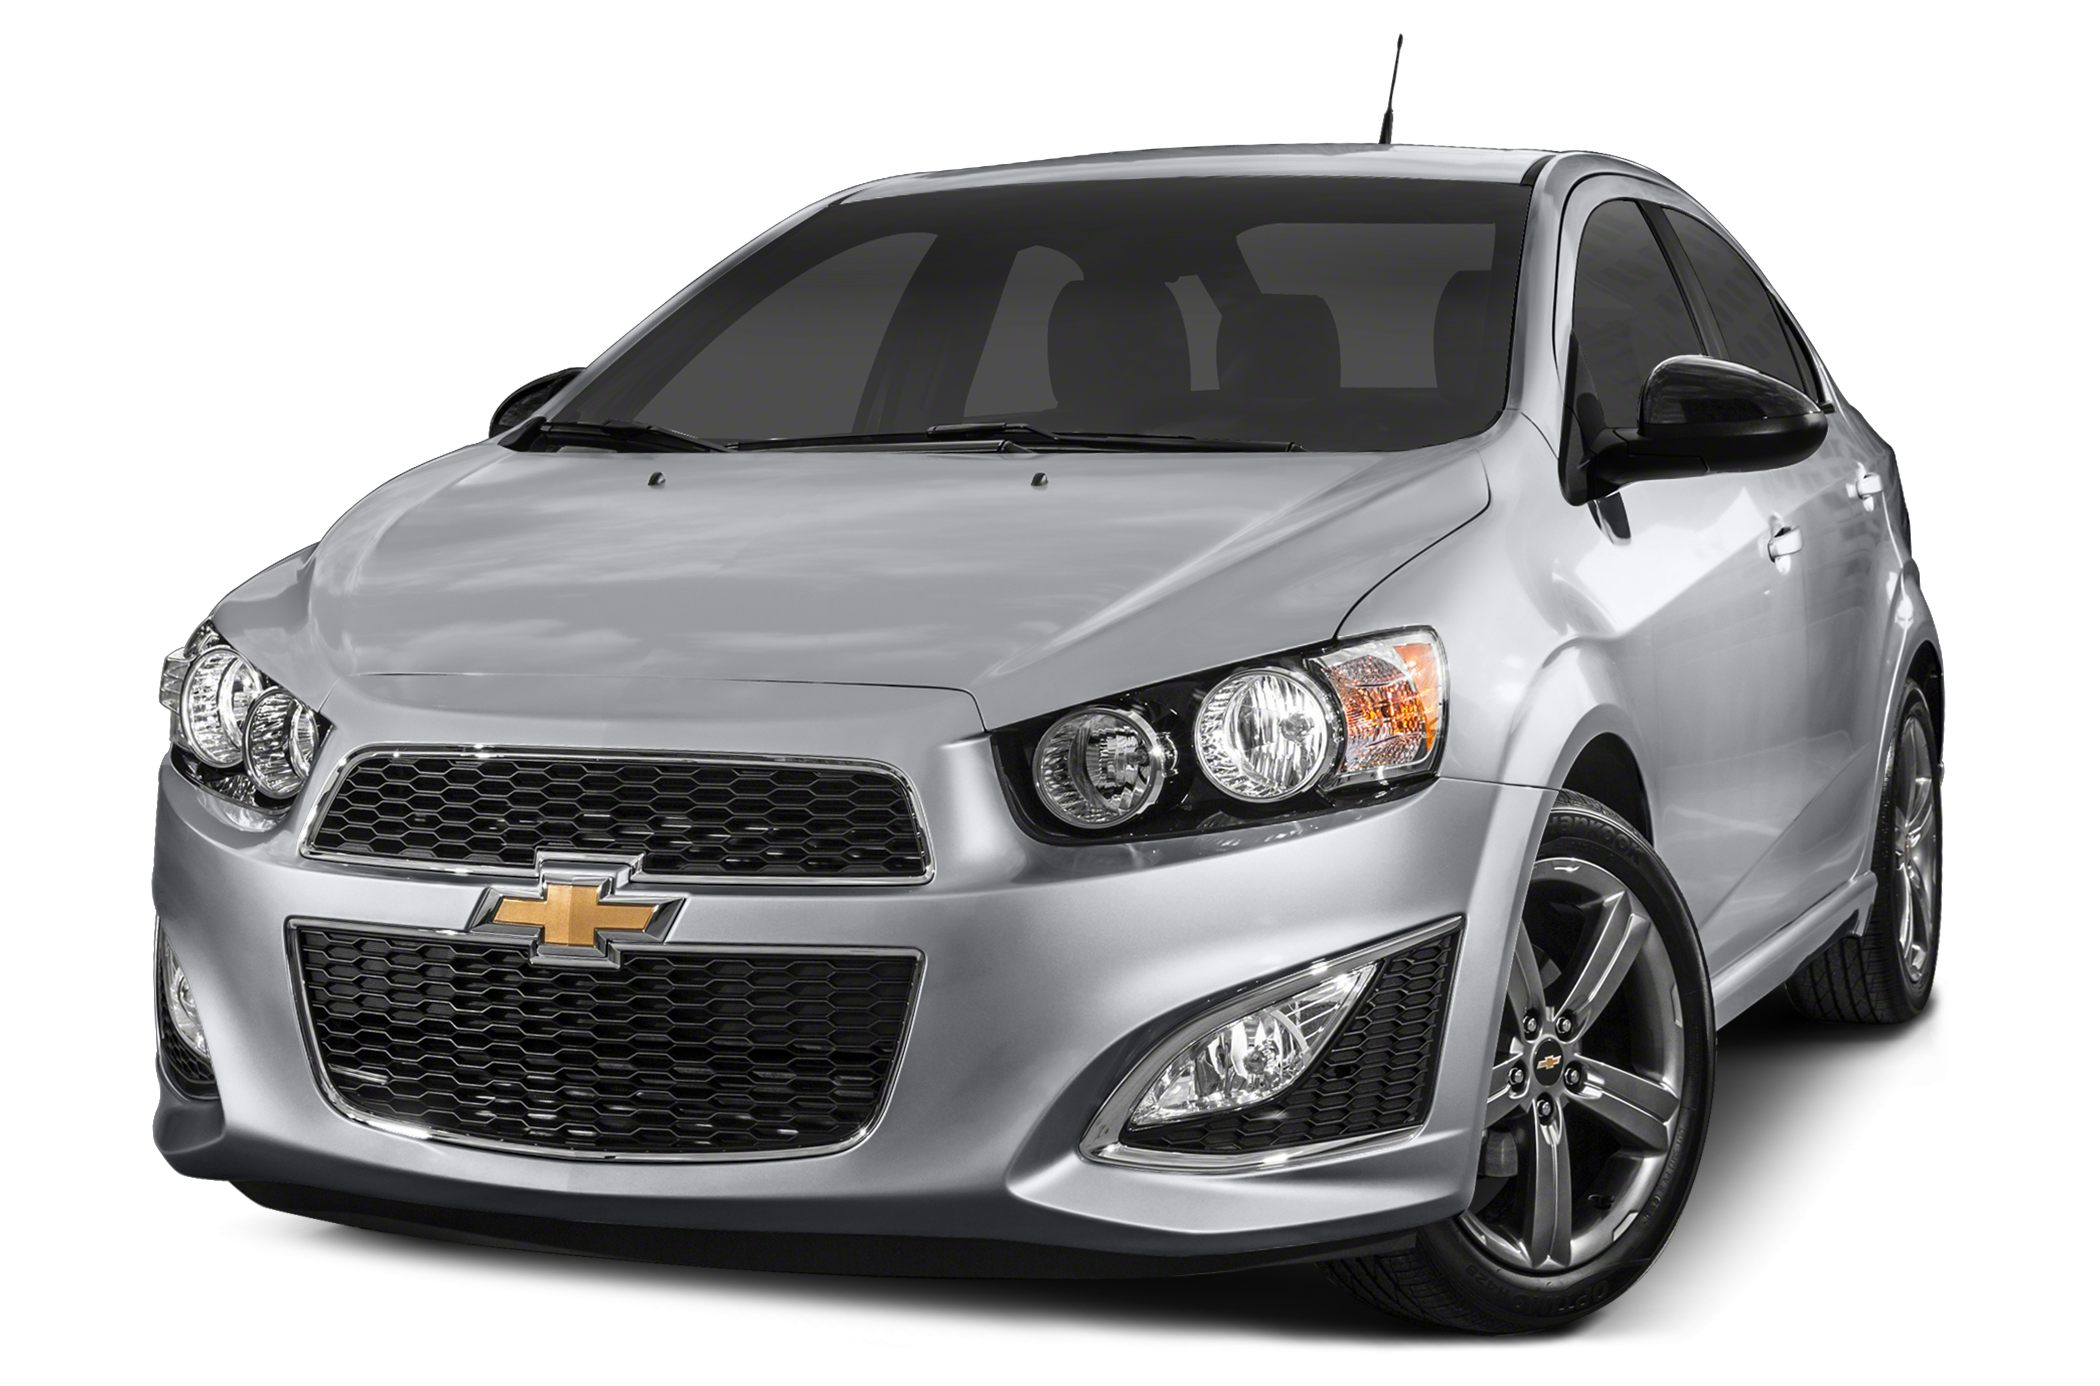 2014 Chevrolet Sonic RS Hatchback for sale in Bloomer for $18,500 with 1,000 miles.